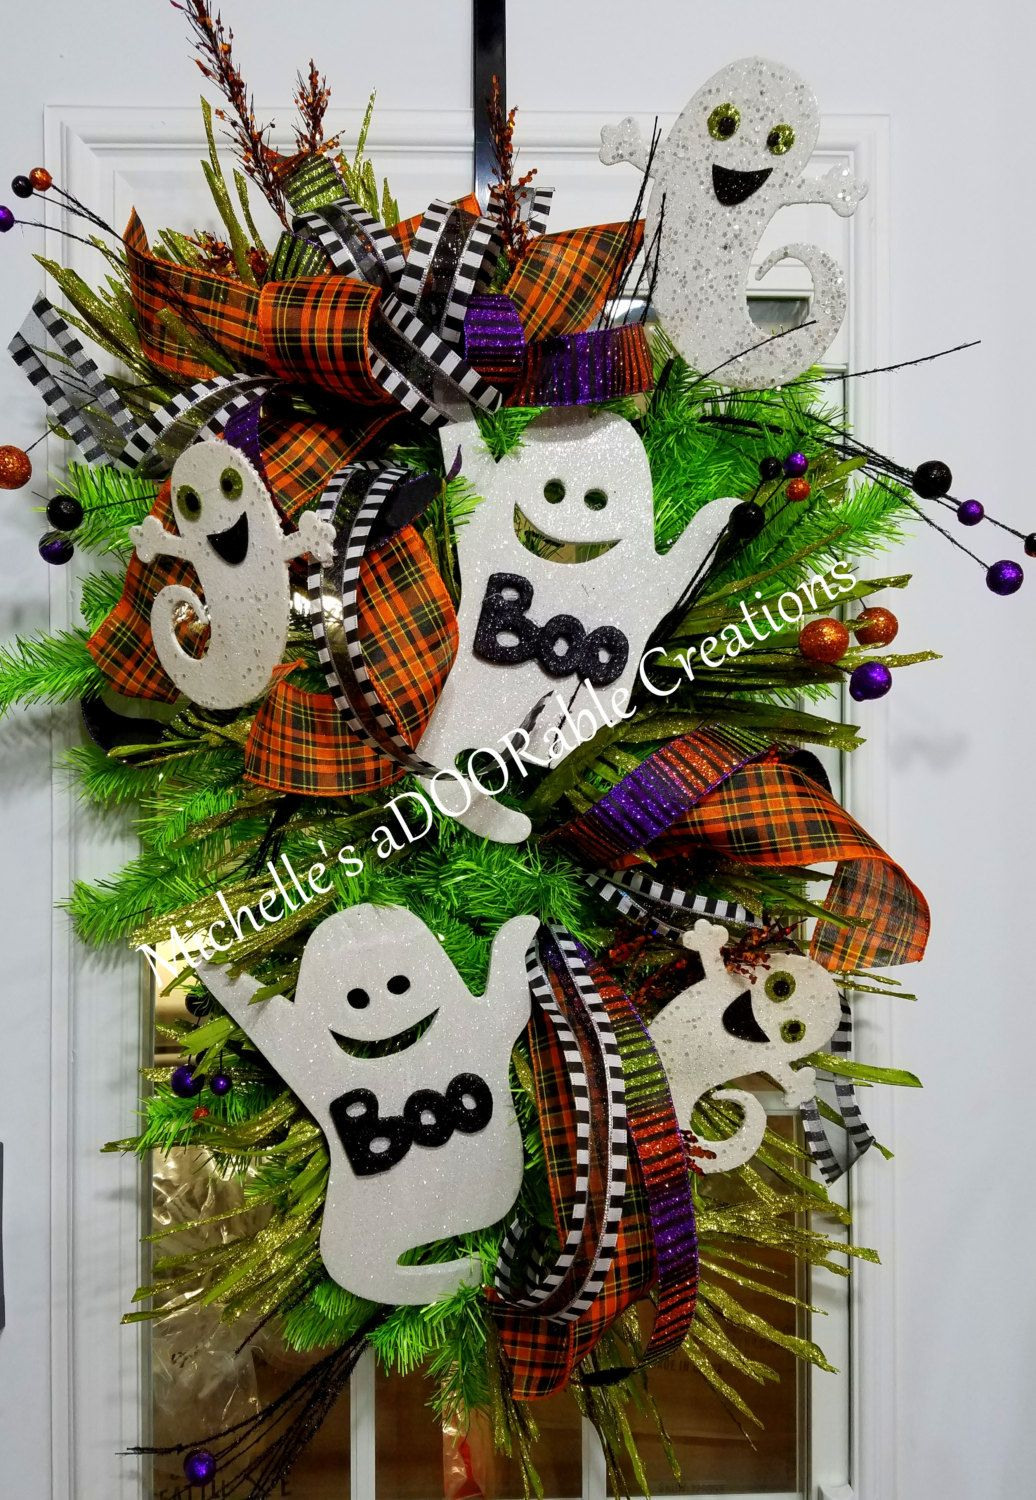 Halloween Ghost Wreath Swag - Boo Ghost Halloween Glitter Teardrop - Halloween Ghost Decorations